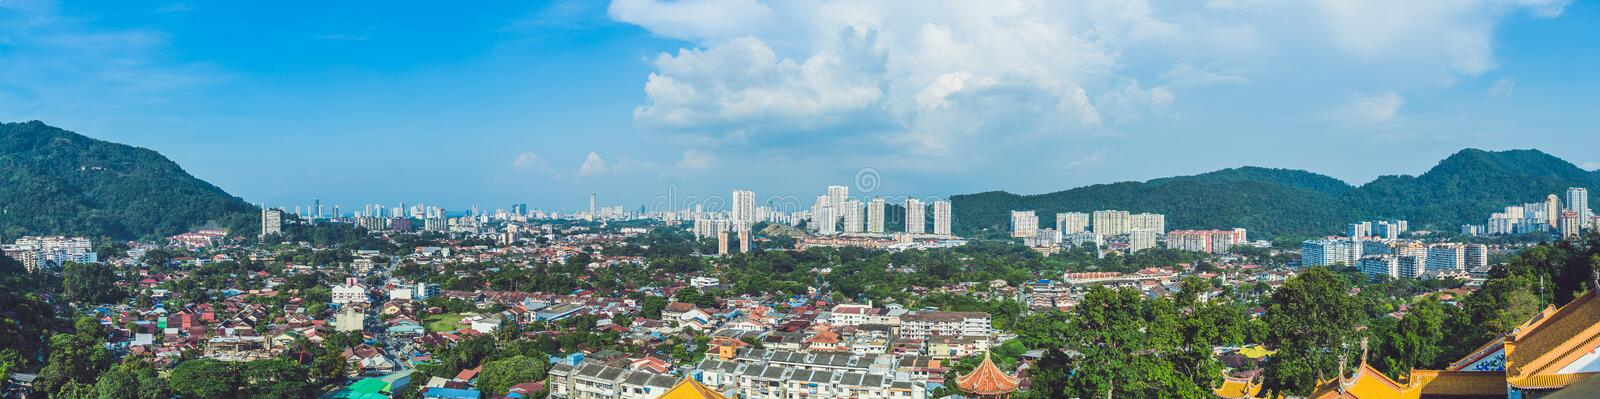 Panoramic View of Penang, Georgetown in Malaysia.  royalty free stock photos